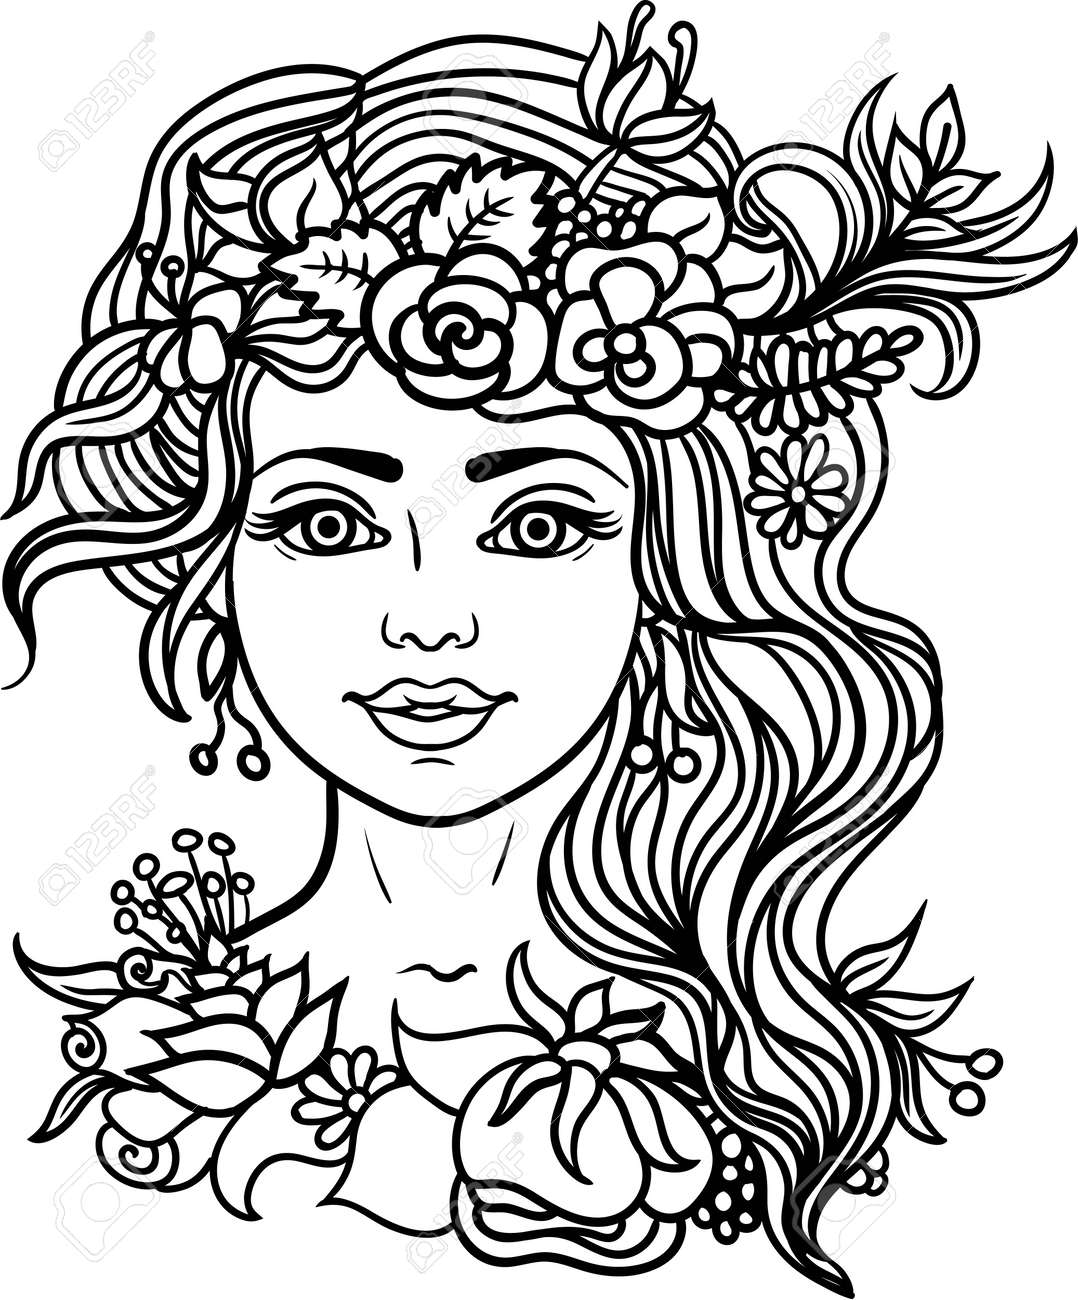 Woman Coloring Page Forest Nymph With Wreath Of Flowers And